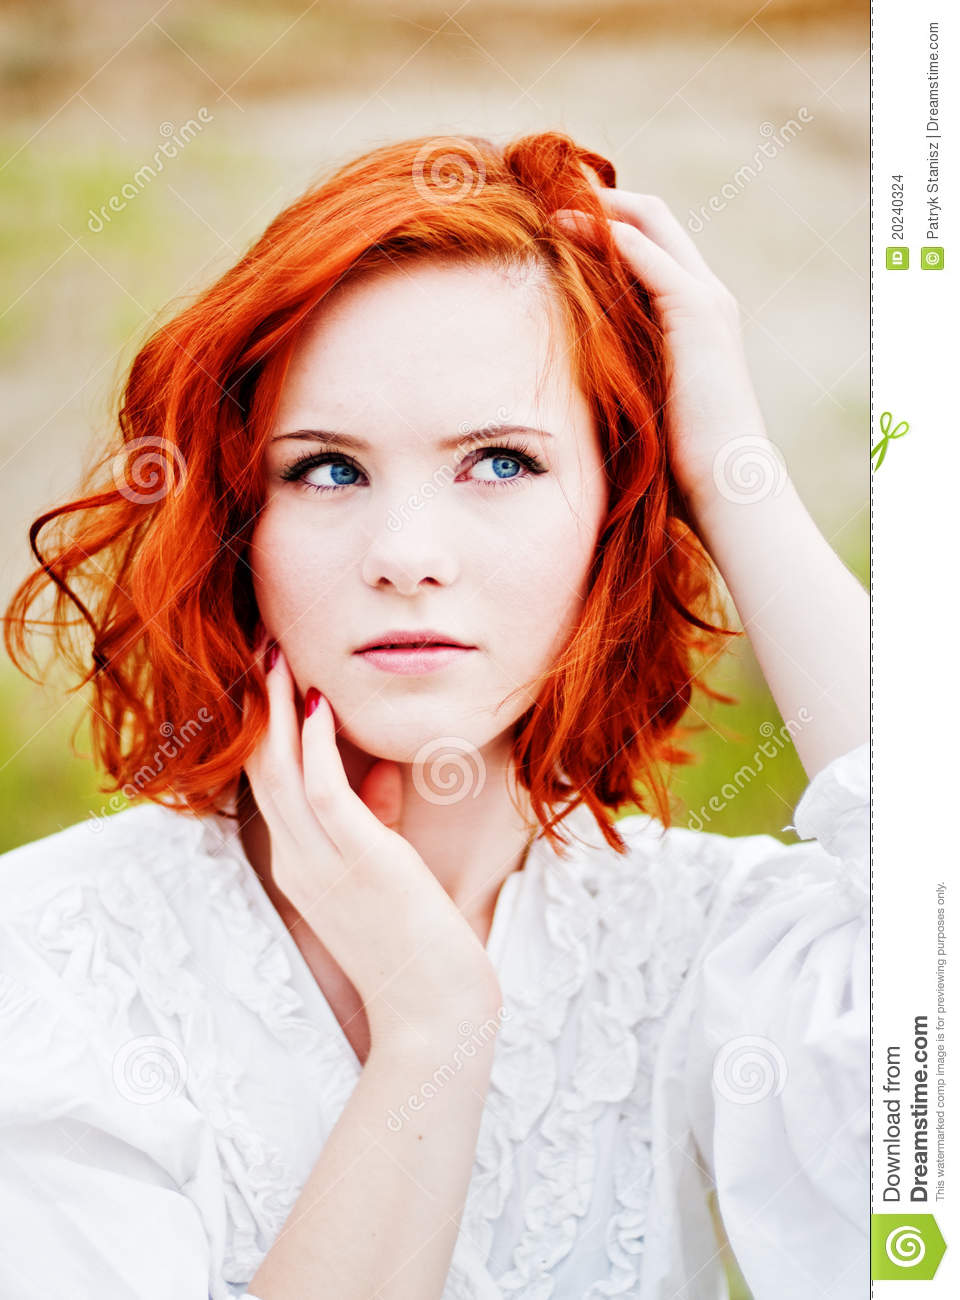 Young girl with red hair have removed